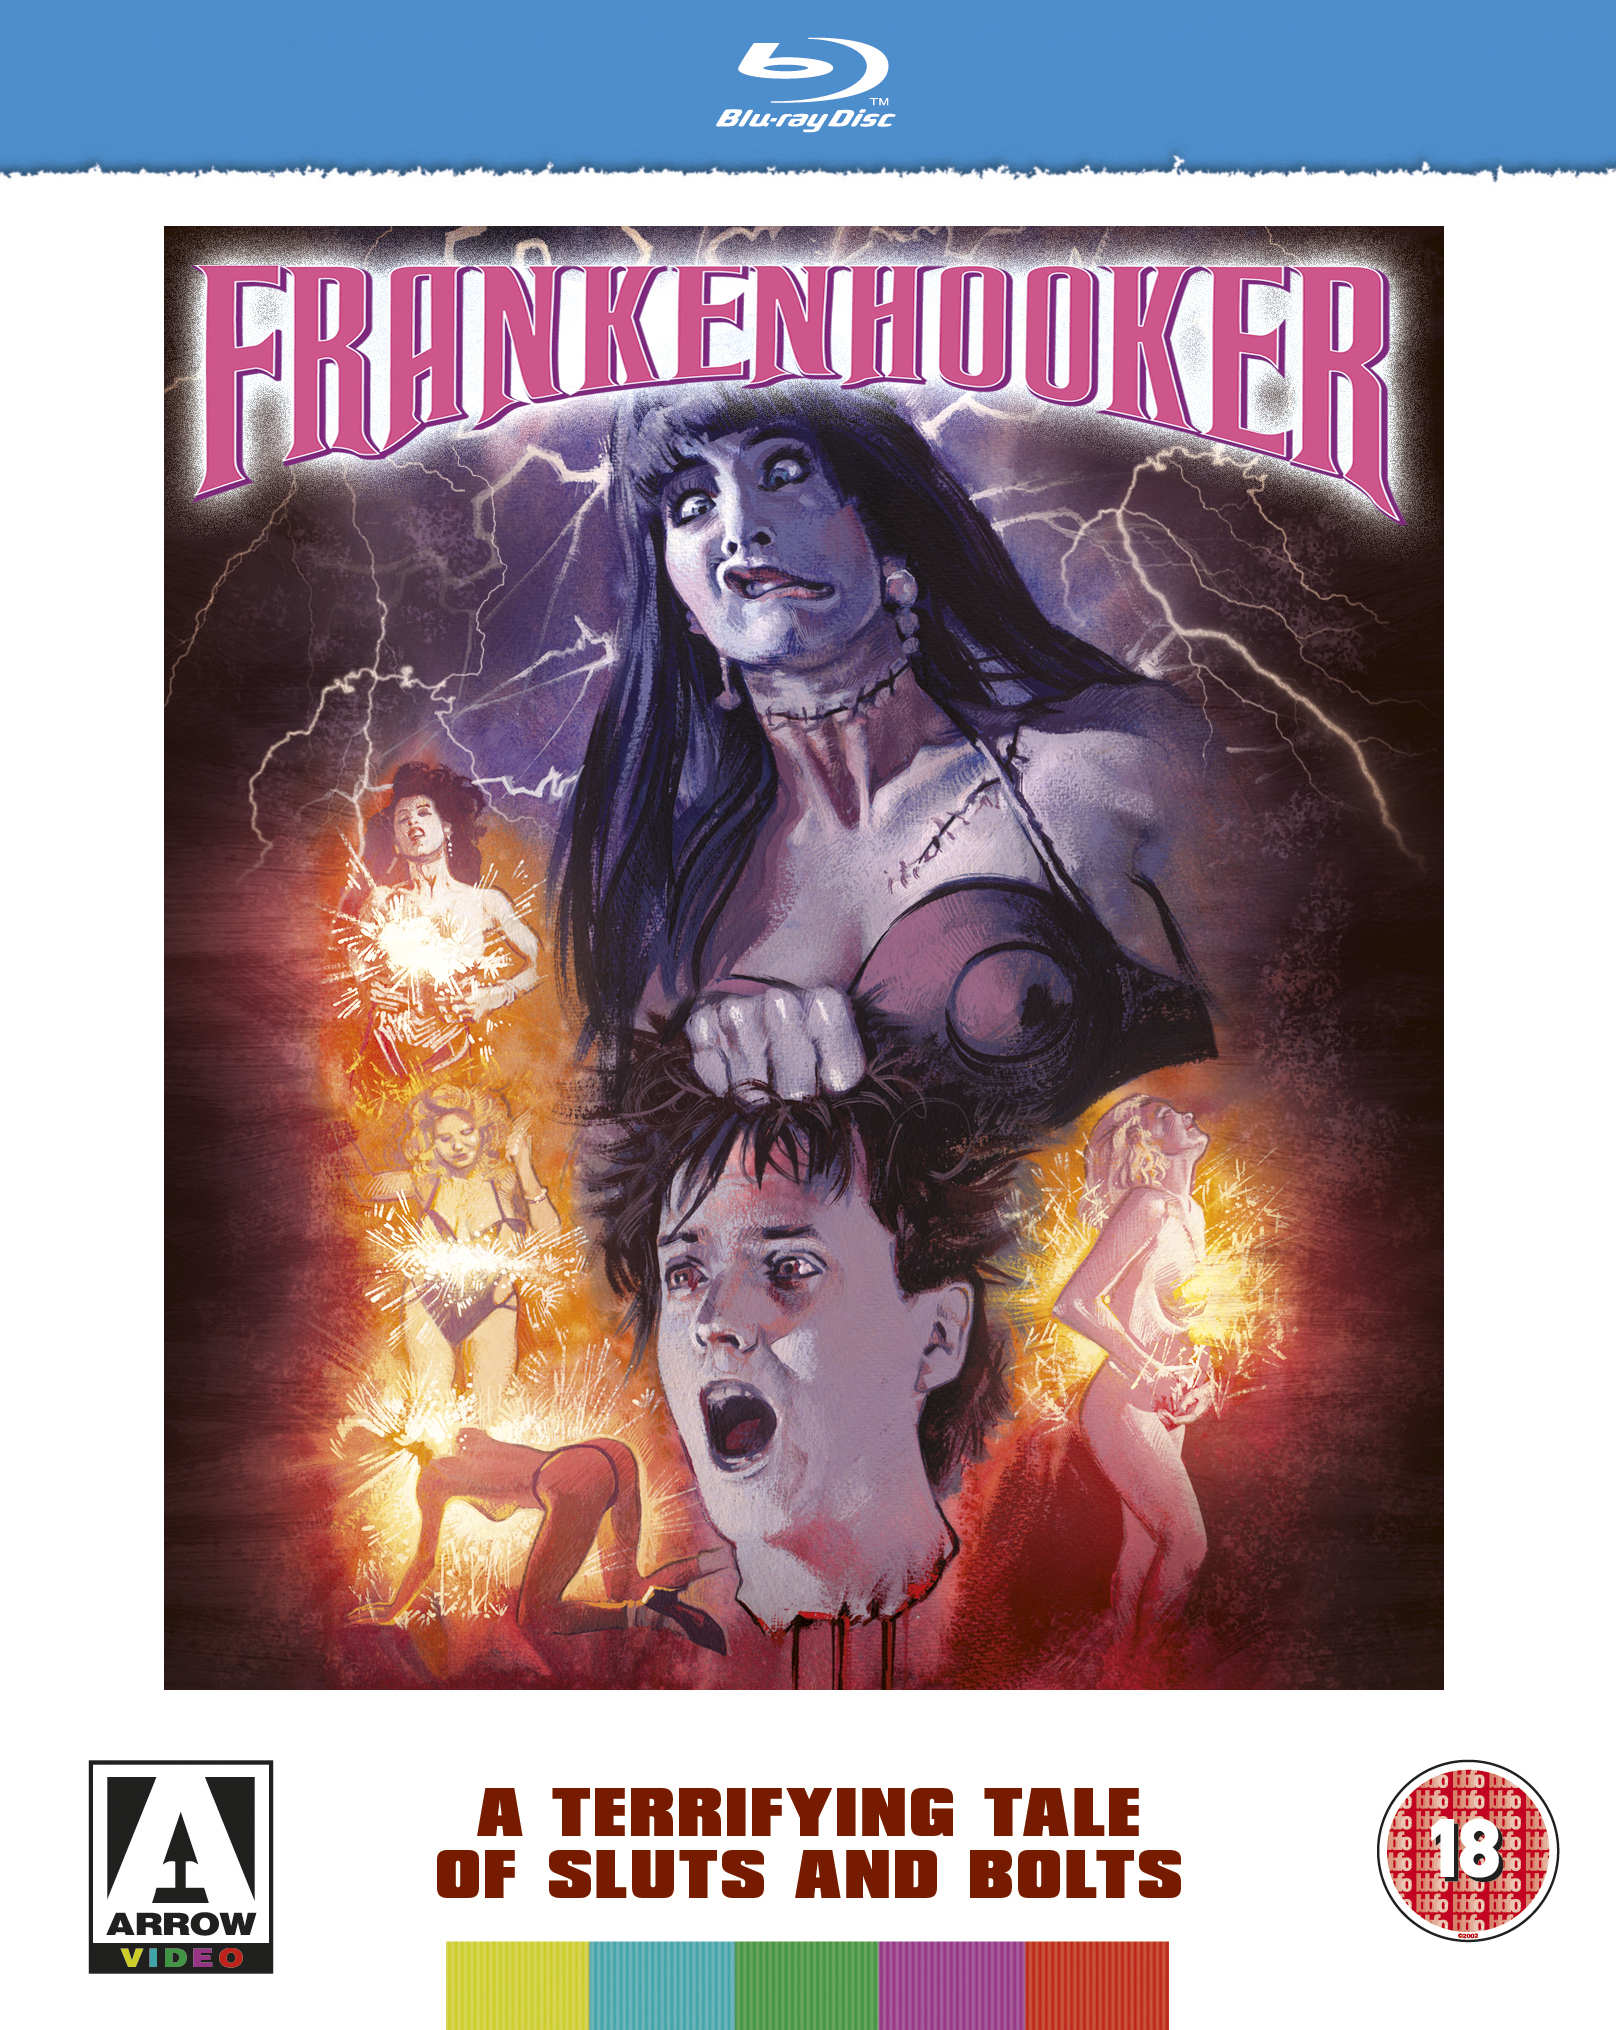 http://wafu1.files.wordpress.com/2011/09/frankenhooker_bd_front_2d.jpg